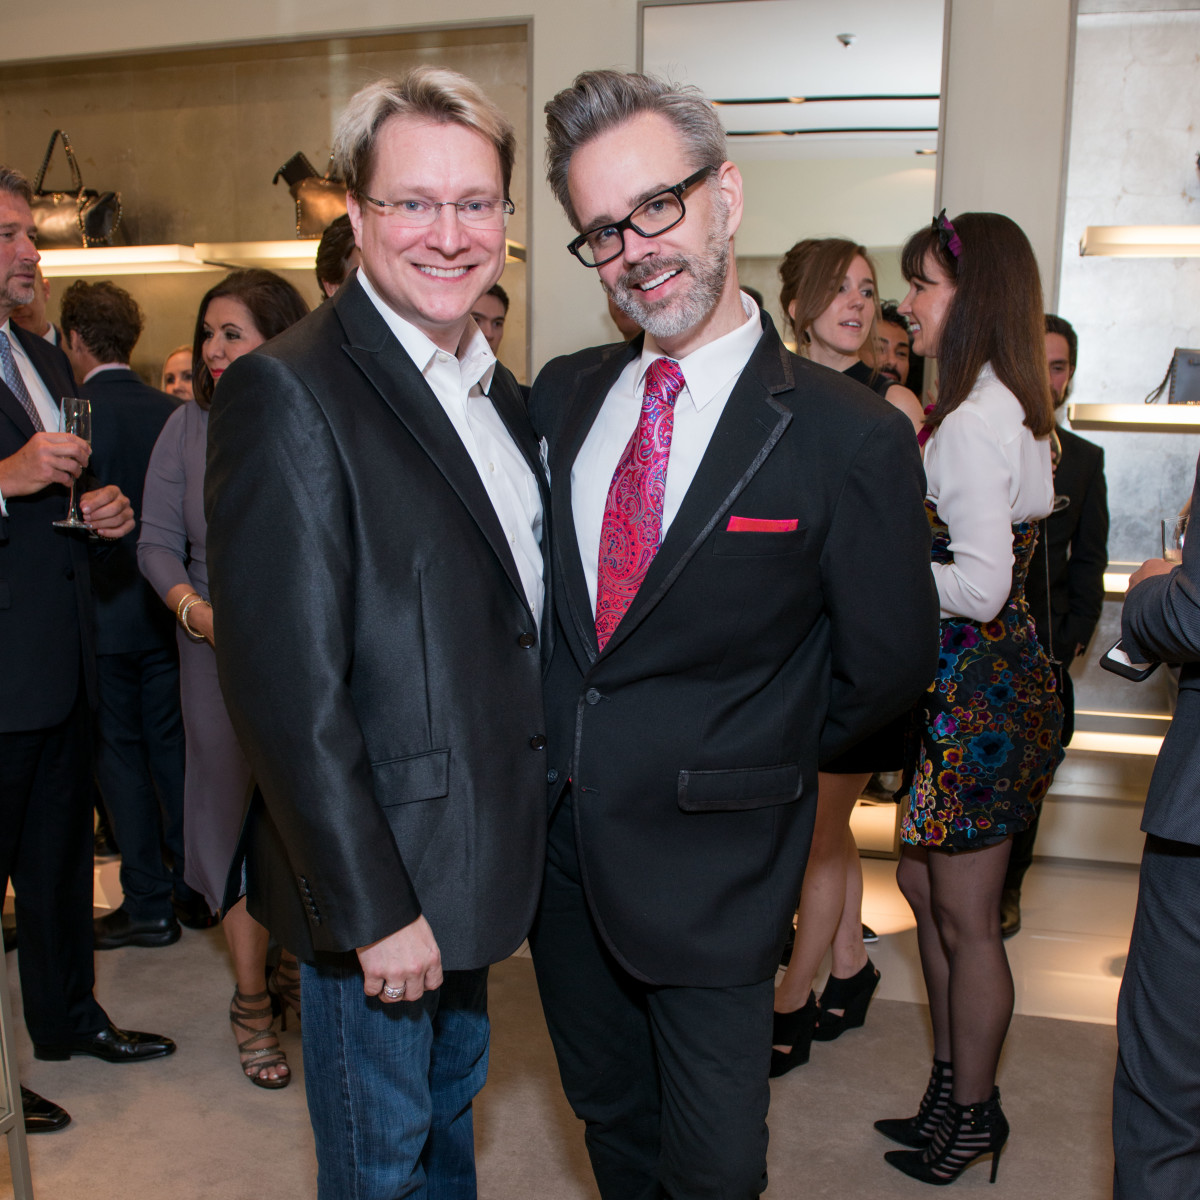 News, Shelby, Heart of Fashion Valentino party, Sept. 2015,Matthew Burrus, Michael Pearce